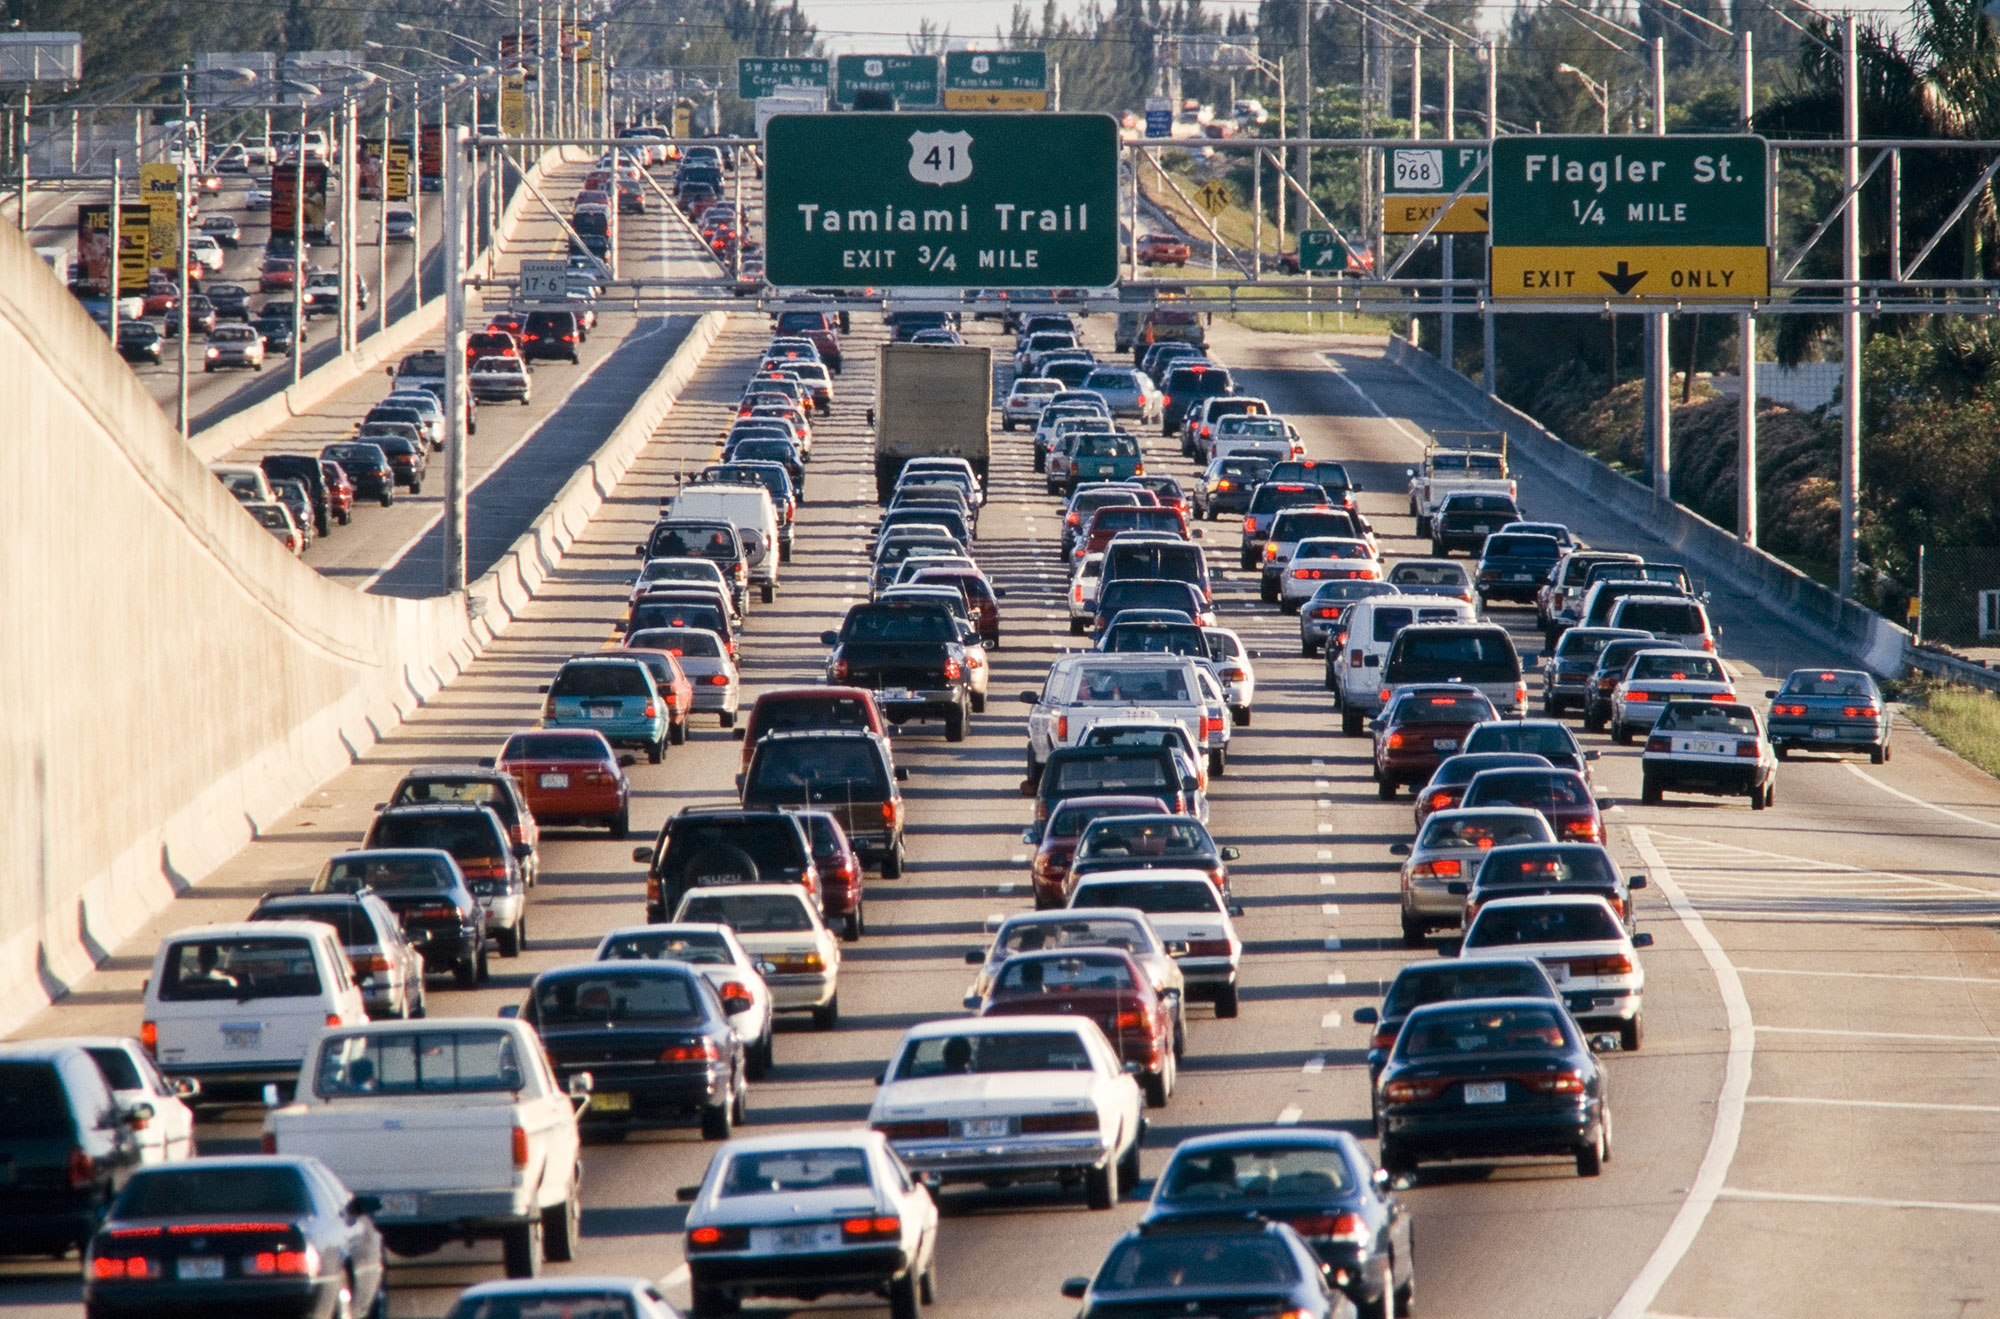 traffic jam problem And the gold medal for the longest traffic jam goes torio congestion stretches seventy four miles as olympic lanes come into use  the traffic problems are set to get much worse, with the.